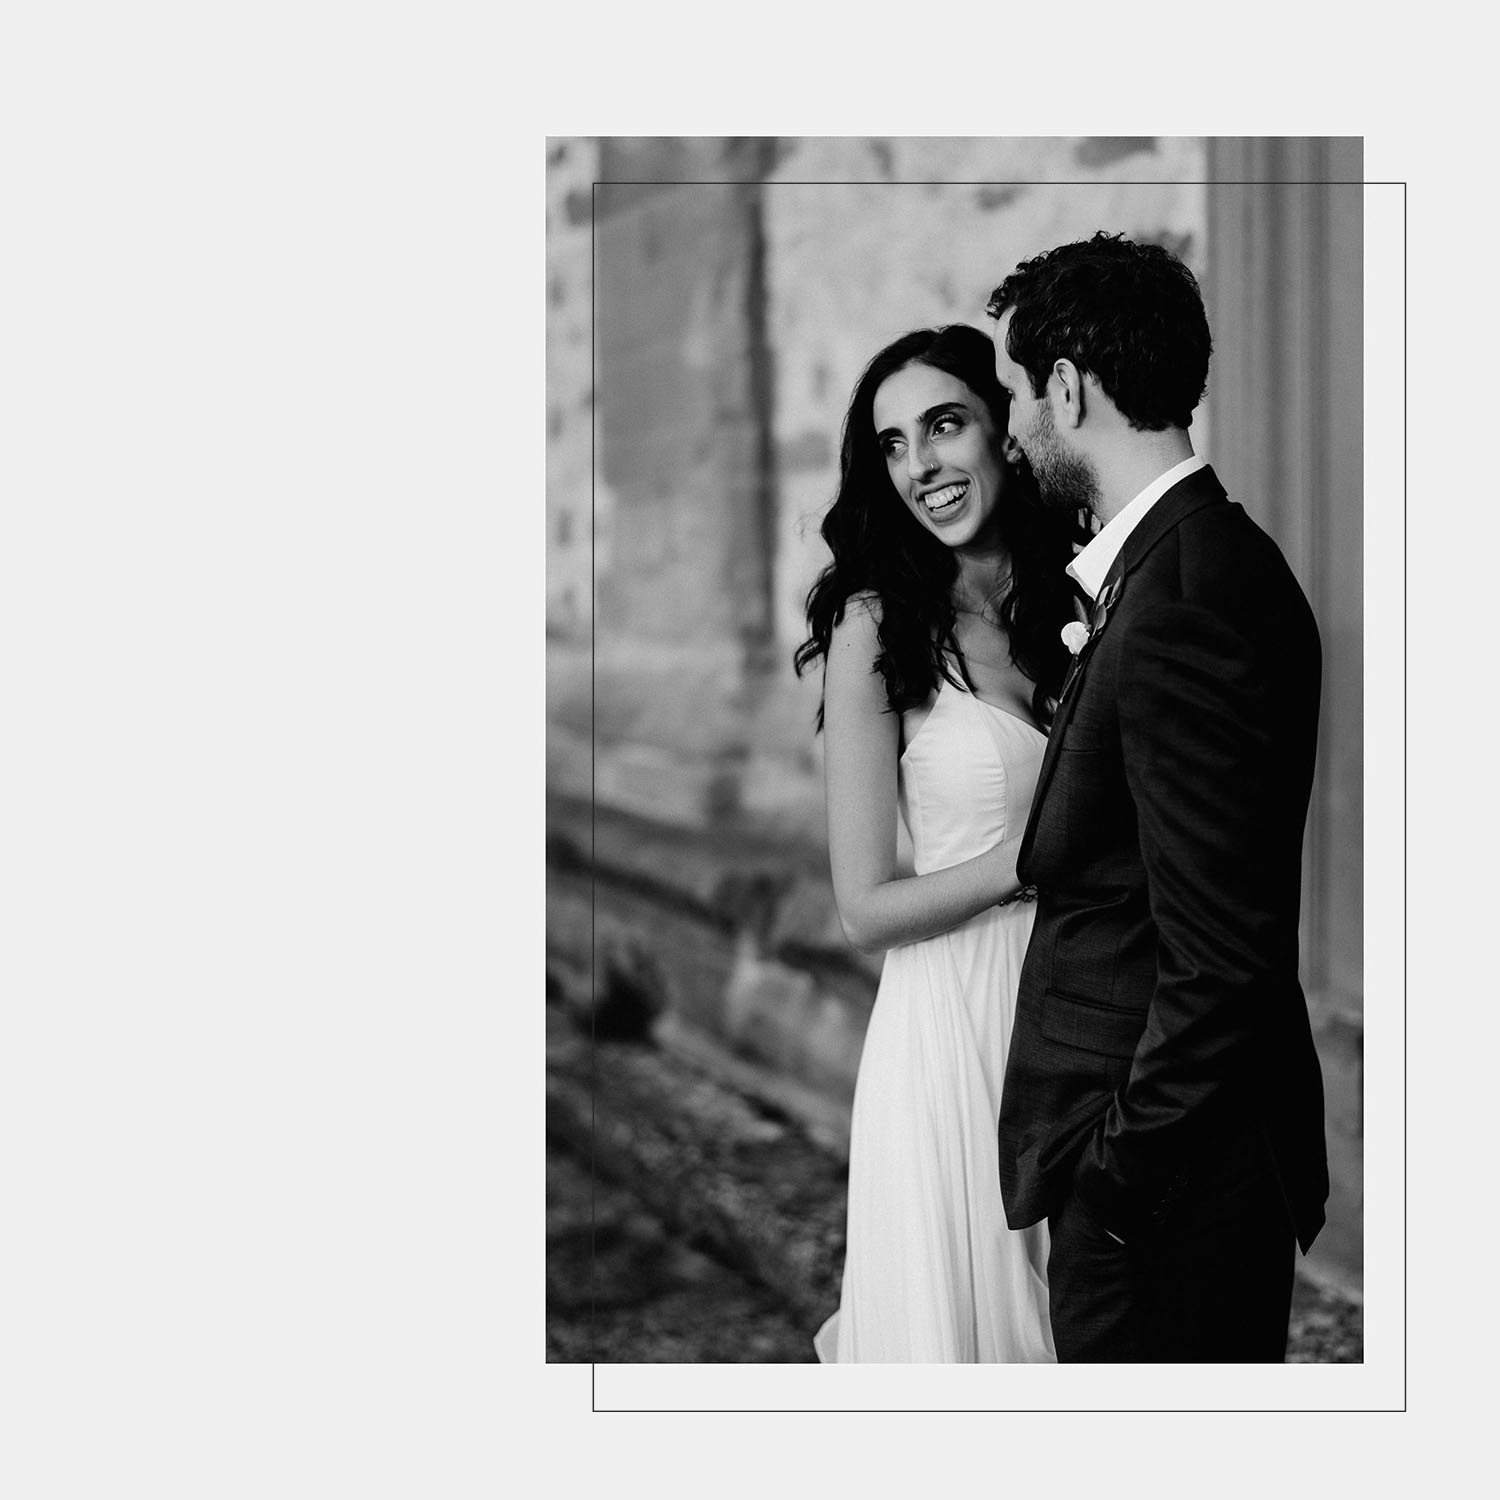 Unbria wedding photographer romantic candid couple photography